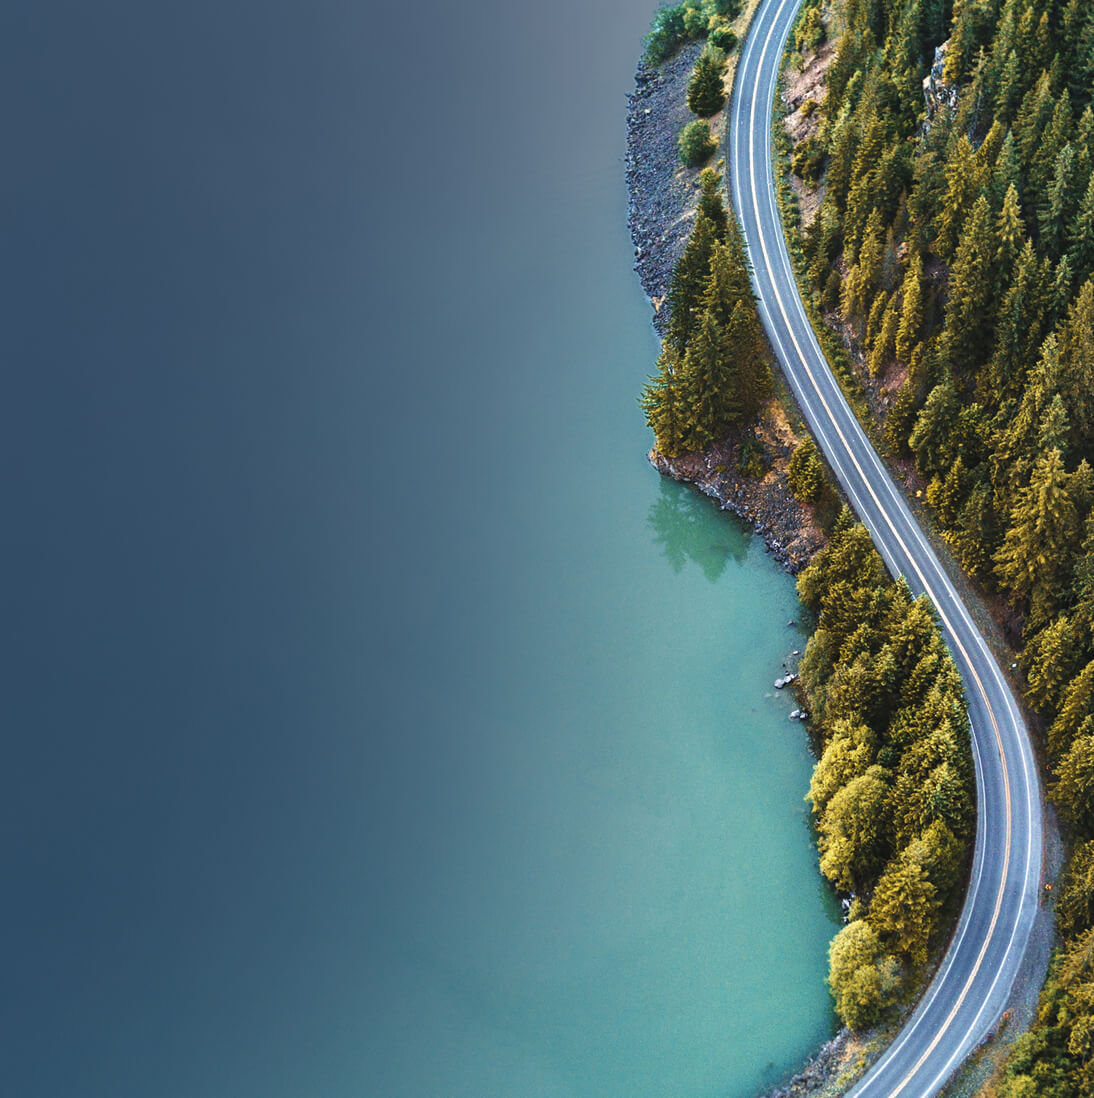 Aerial photo of a coastal highway